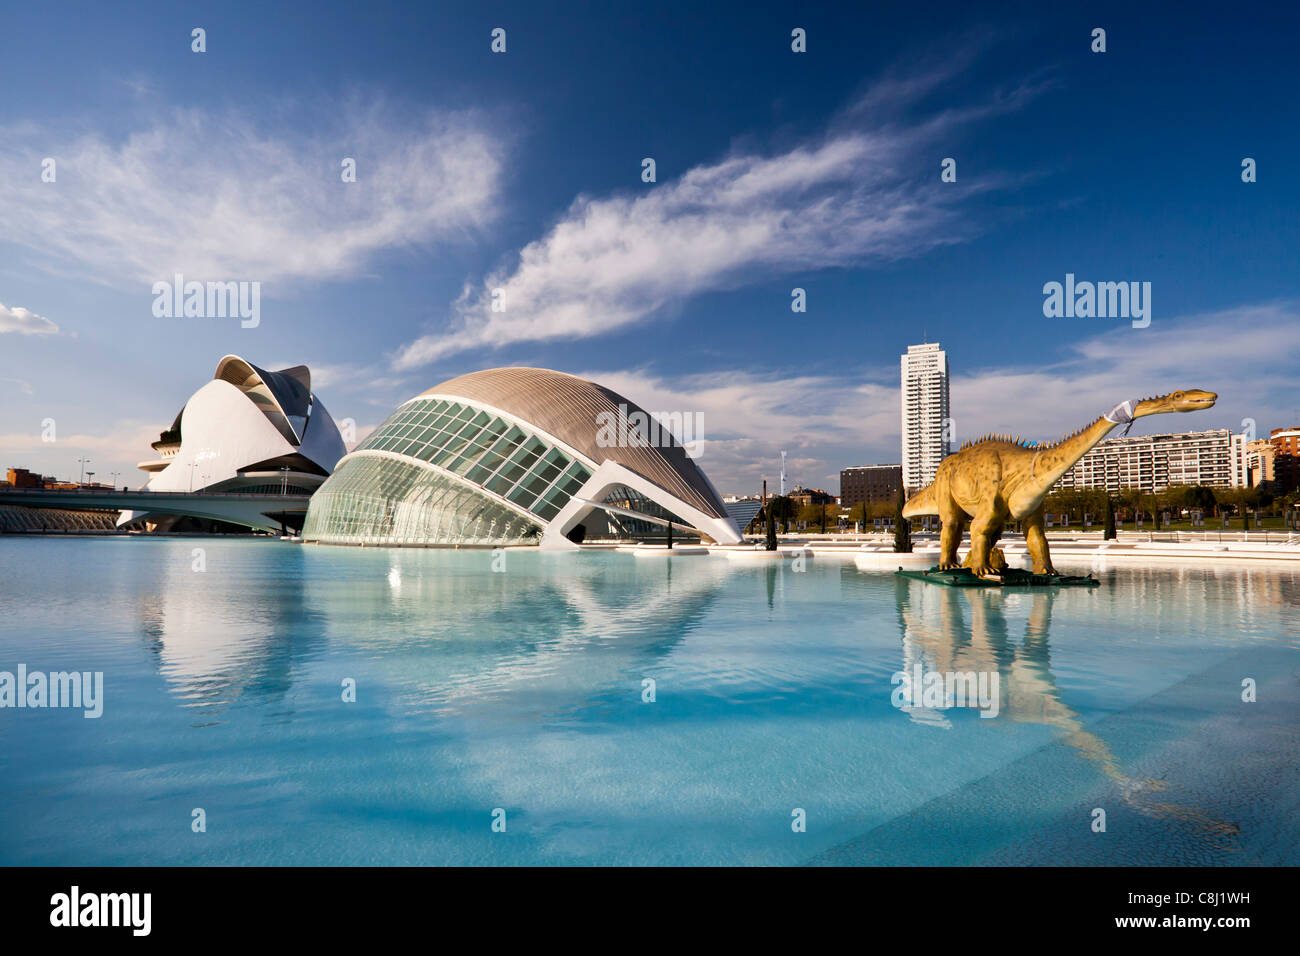 Spain, Europe, Valencia, City of Arts and Science, Calatrava, architecture, modern, Dinosaur, water - Stock Image